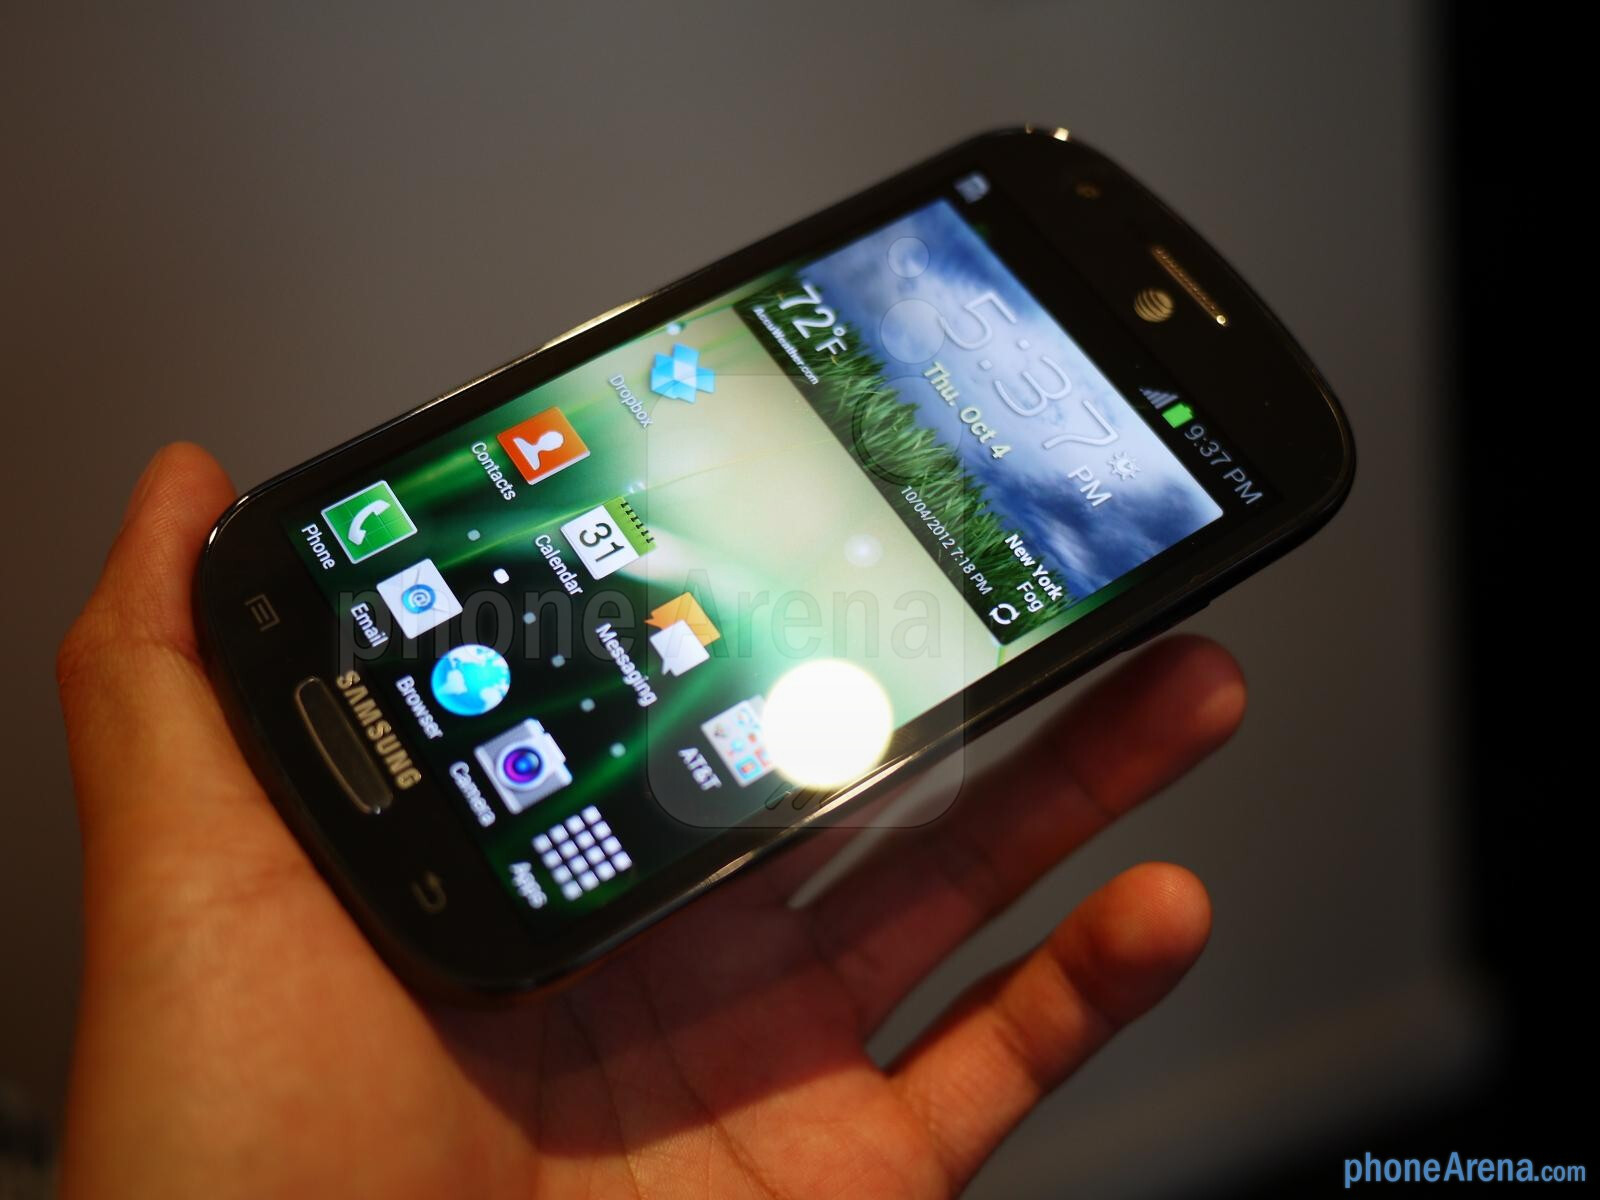 From the front, it's very similar to the Galaxy S III